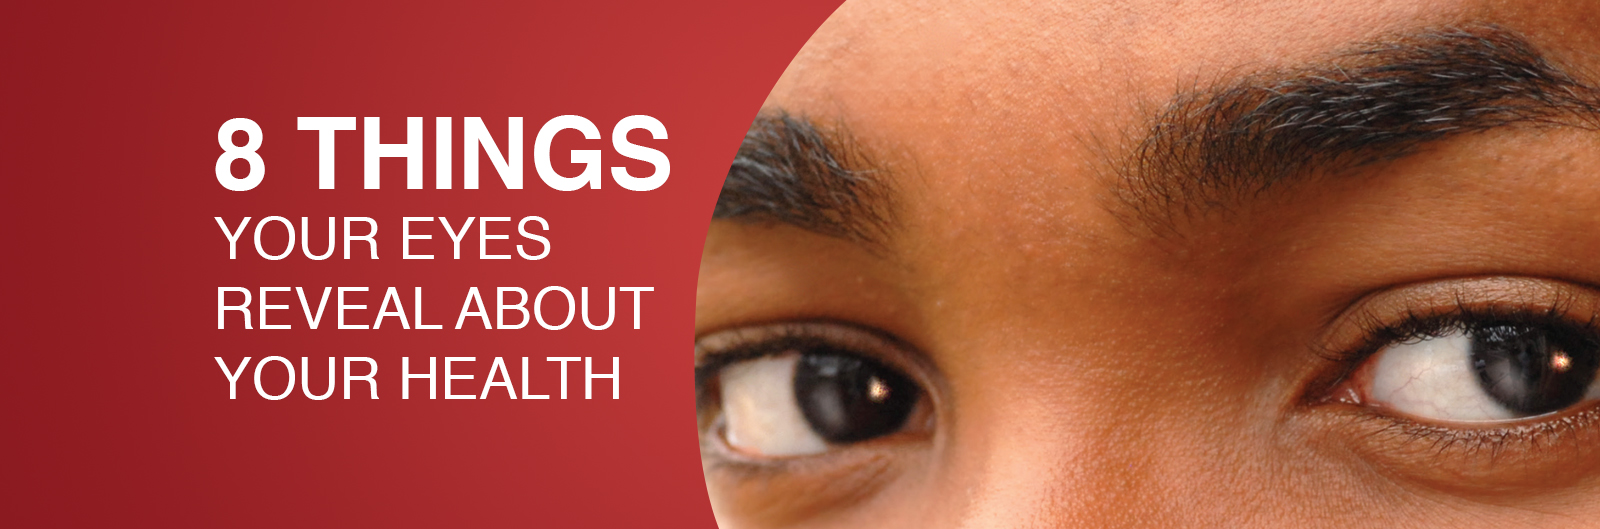 Courts Optical Jamaica | Eye Vision Test & Optical Services In Jamaica